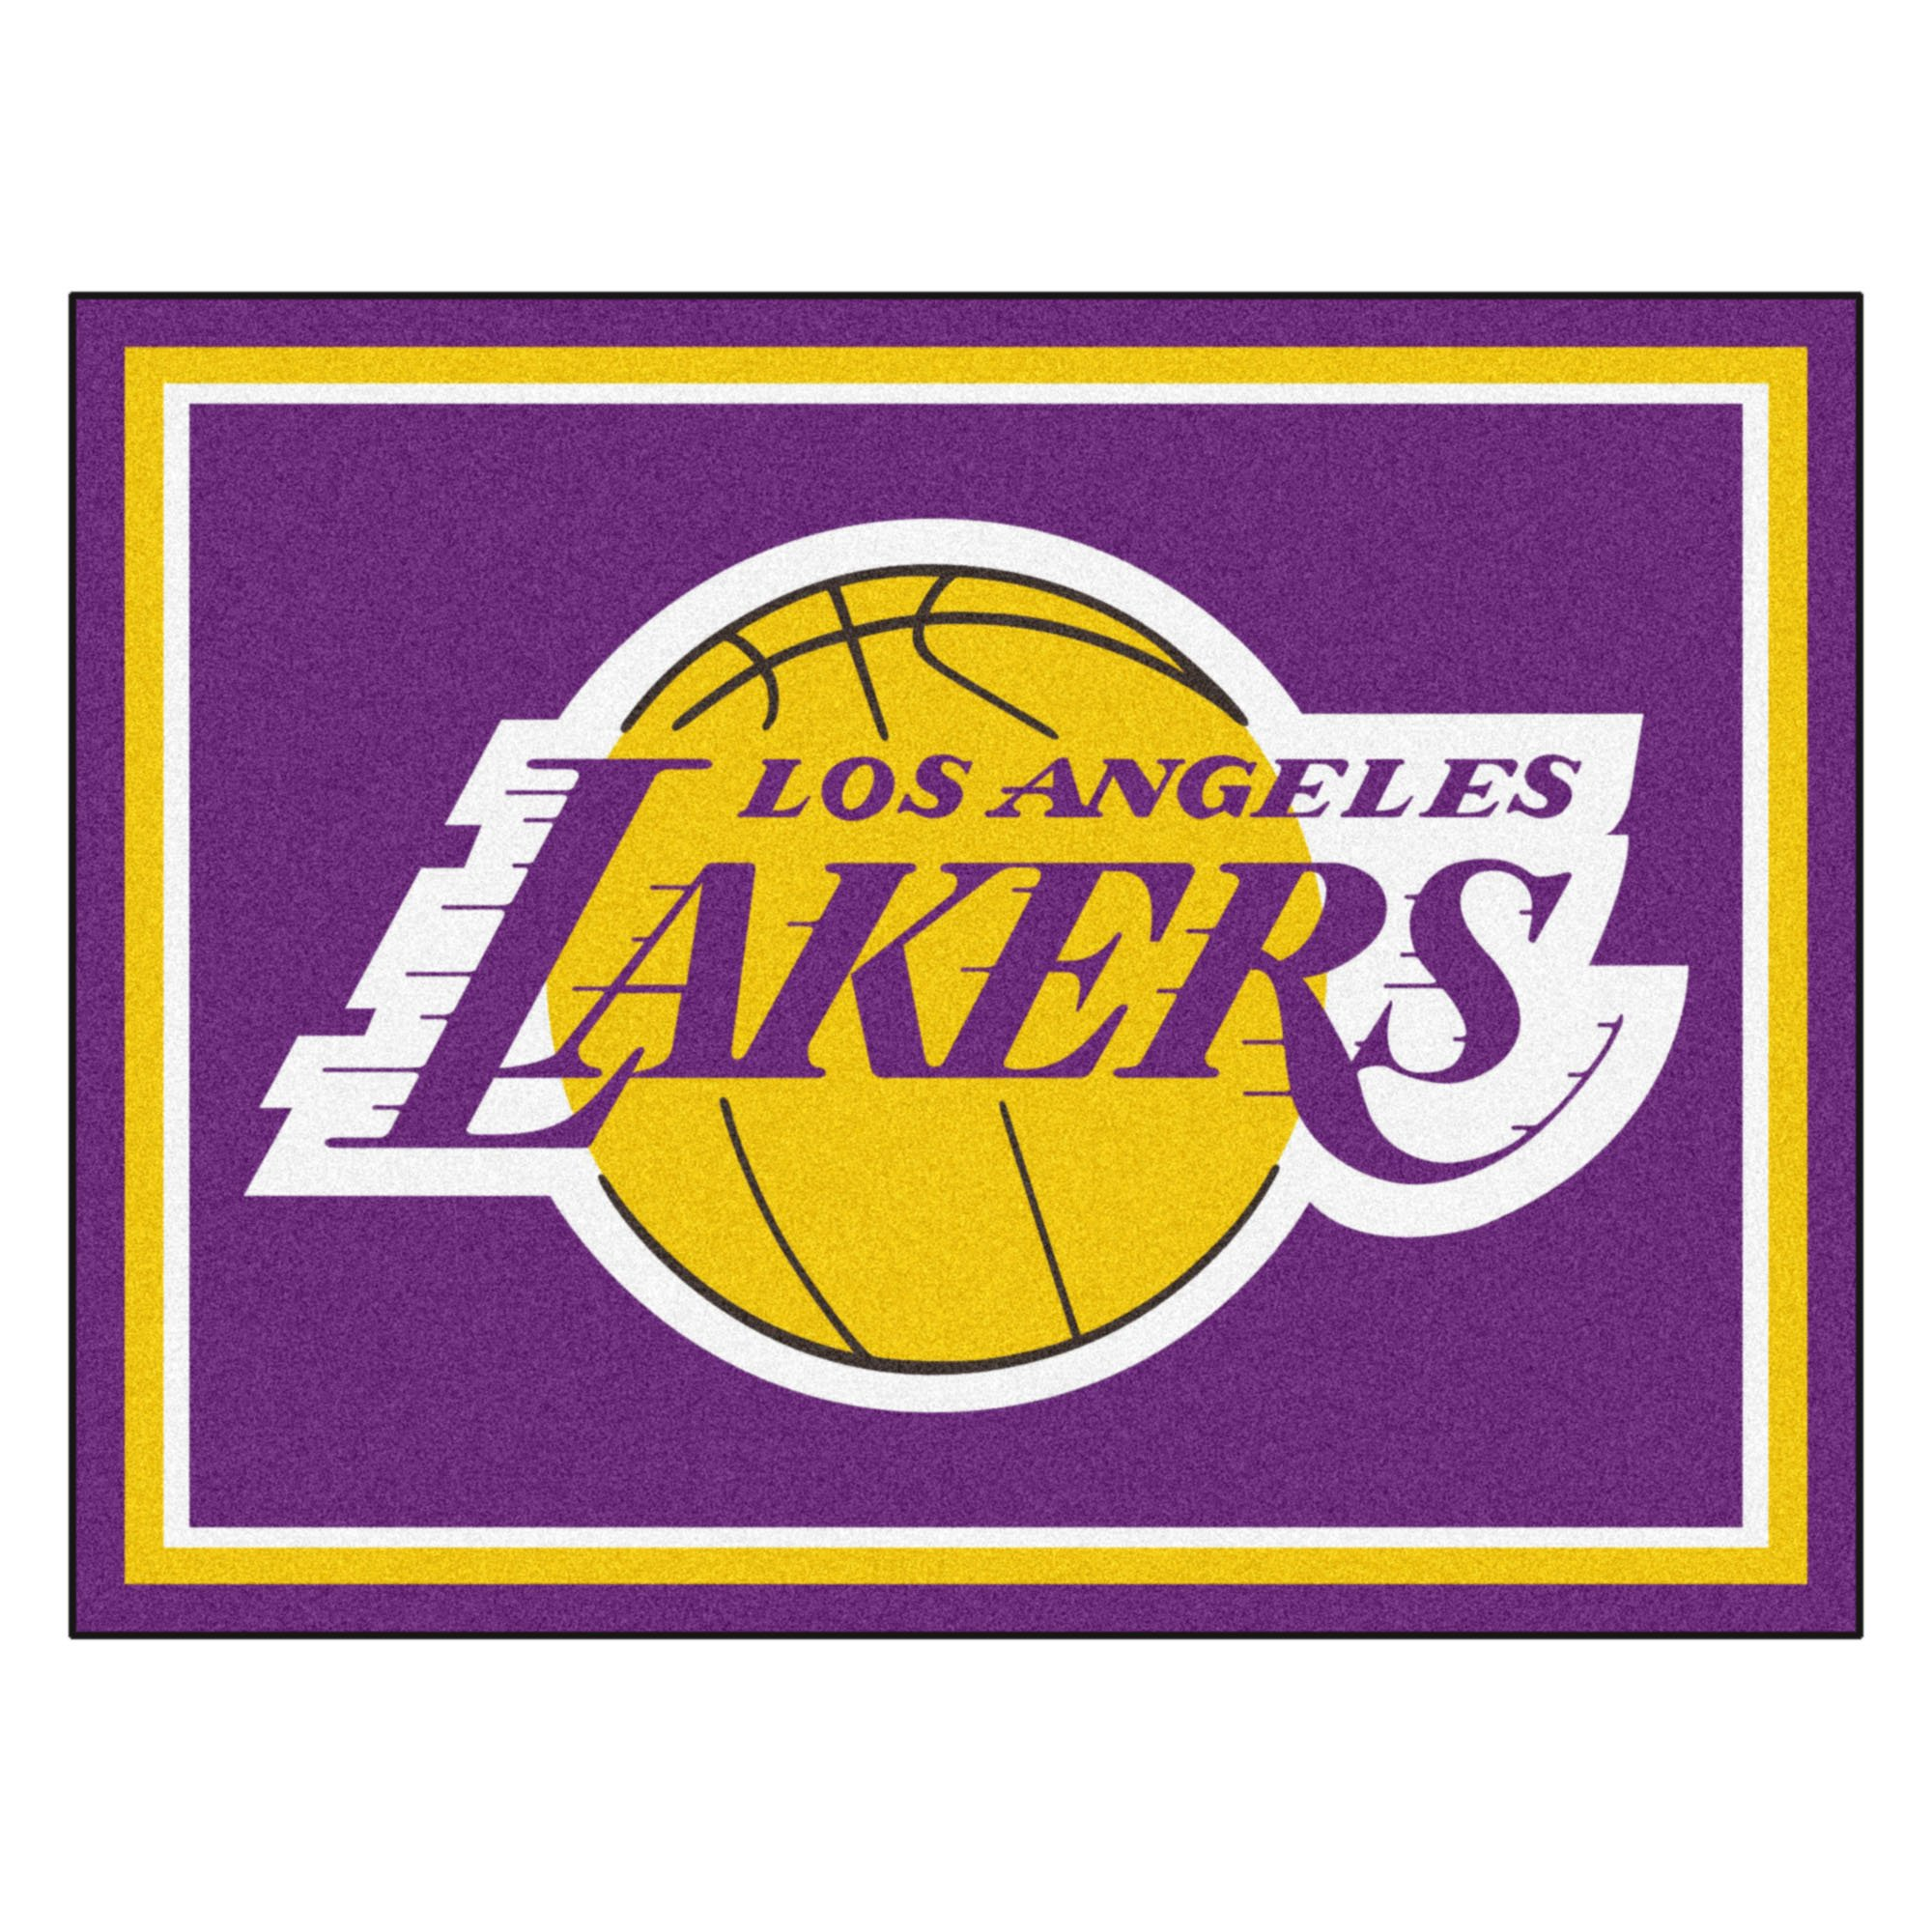 FANMATS 17455 NBA Los Angeles Lakers Rug by Fanmats